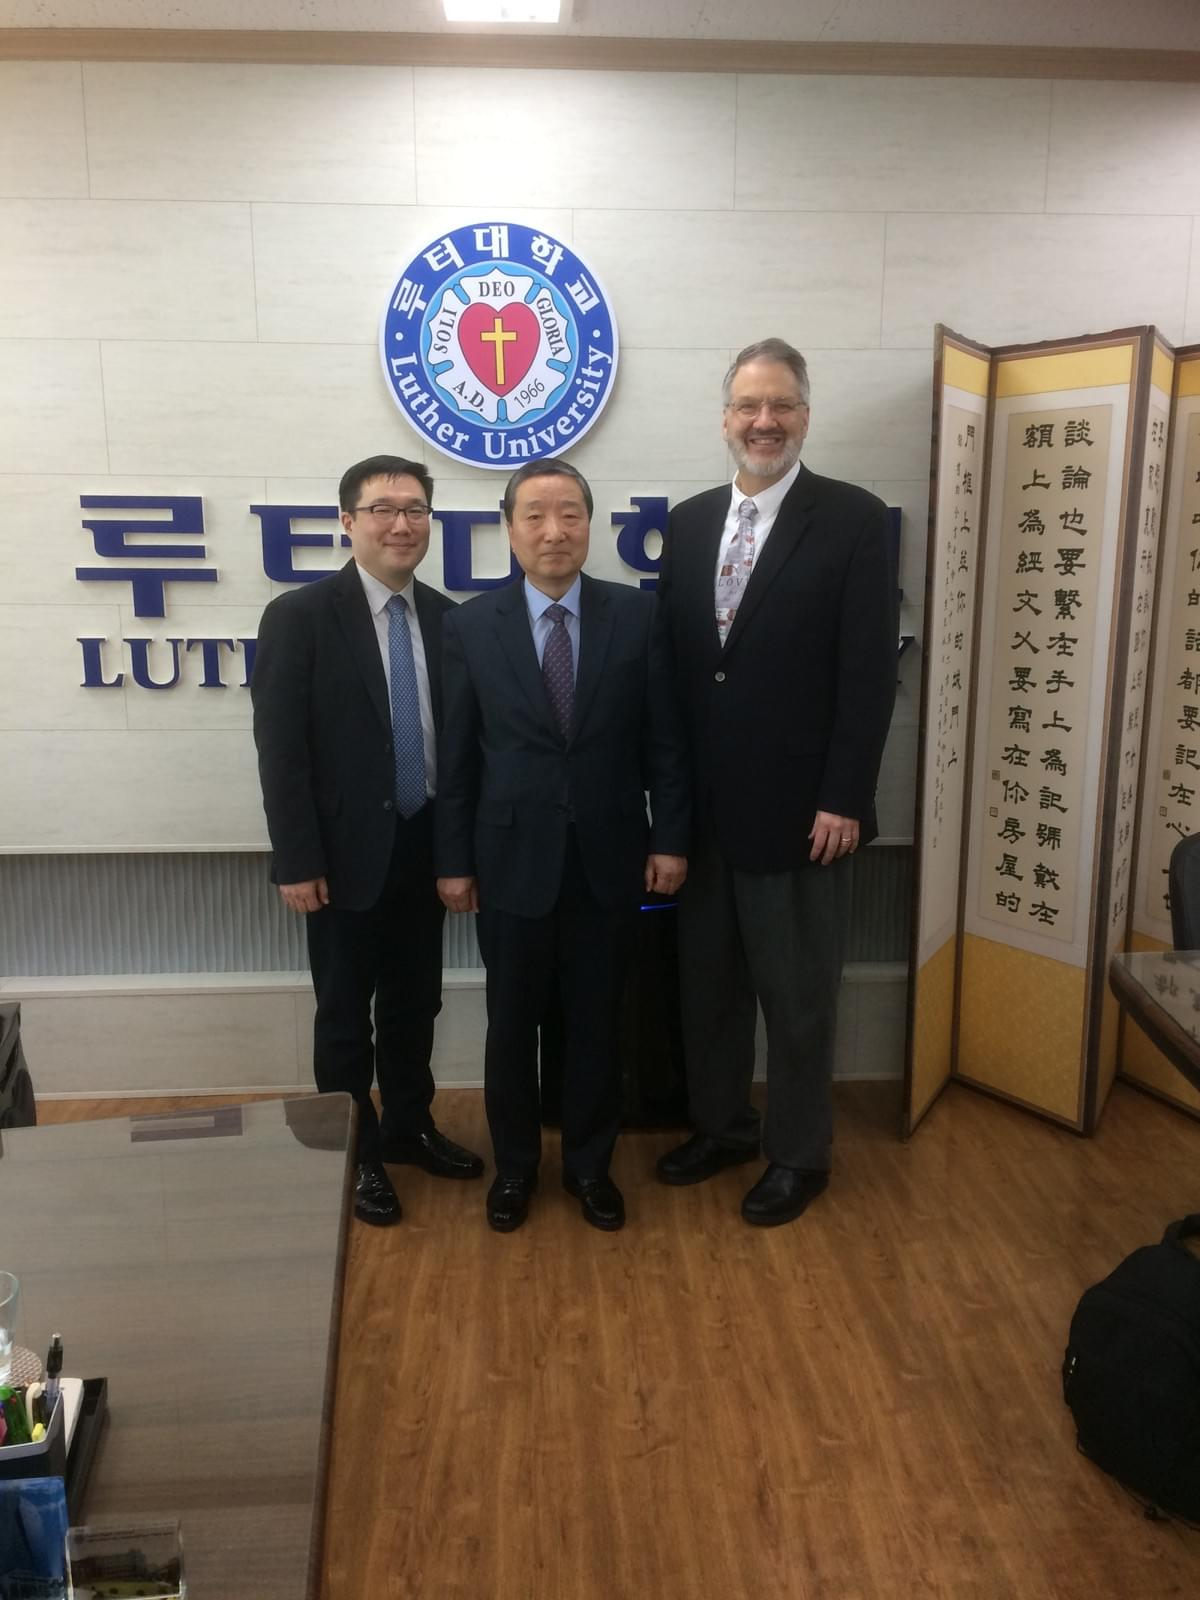 Prof. Rev. Dr. Jun Hyun KIM (left), Rev. Dr. Deuk Chil KWON (middle), Rev. Dr. Hans TRINKLEIN (right)